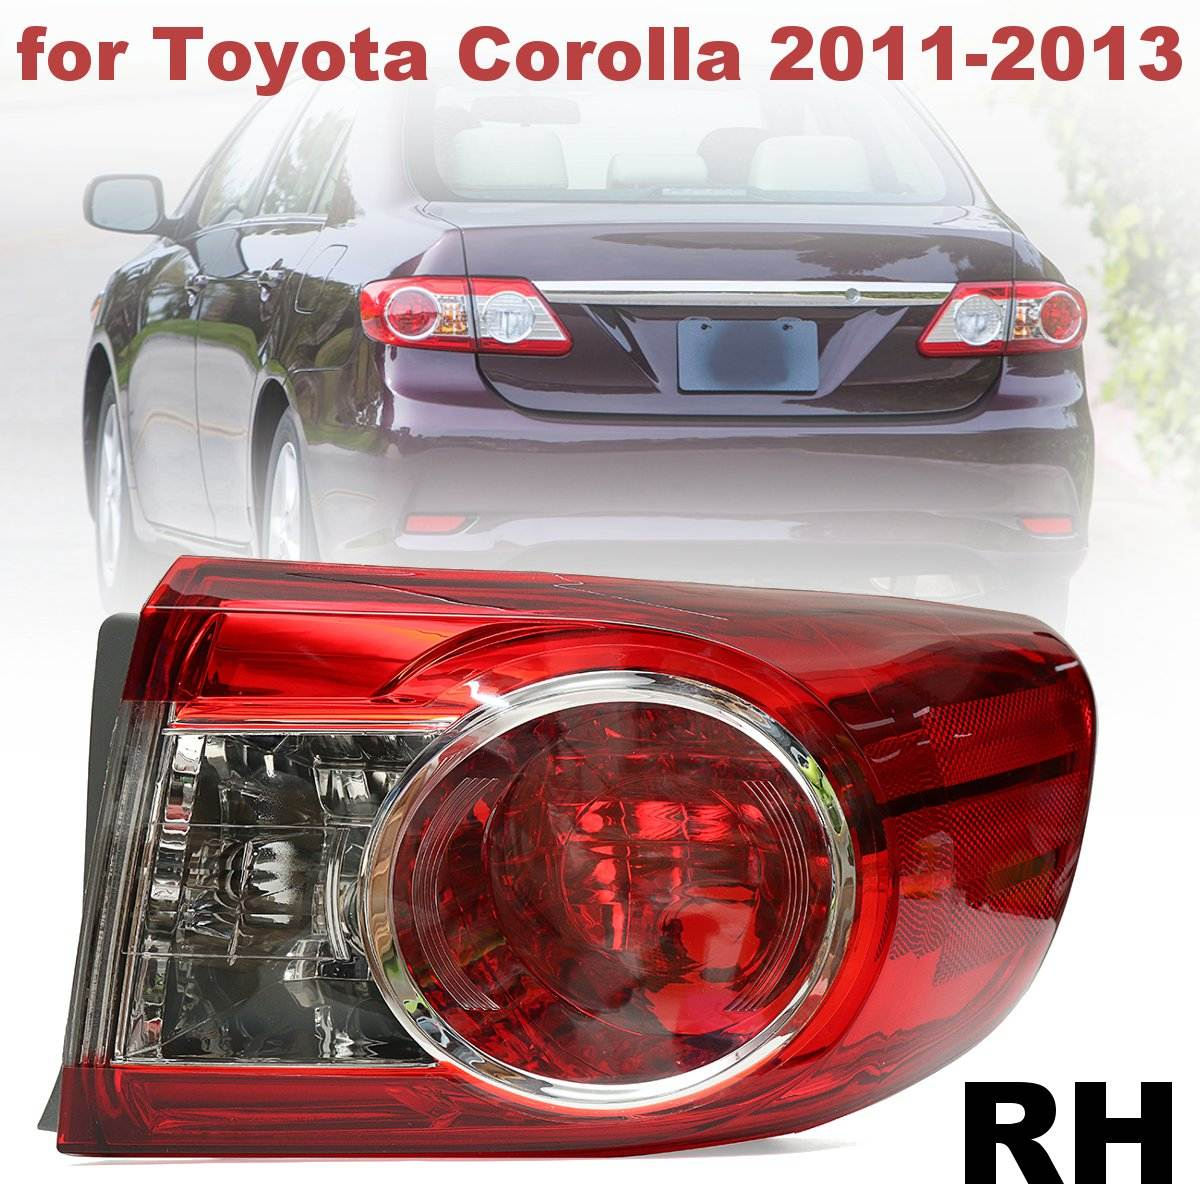 #TO2804111 #81560-02580 PMMA Red Rear Right Side Tail Light Brake Lamp for Toyota Corolla 2011 2012 2013